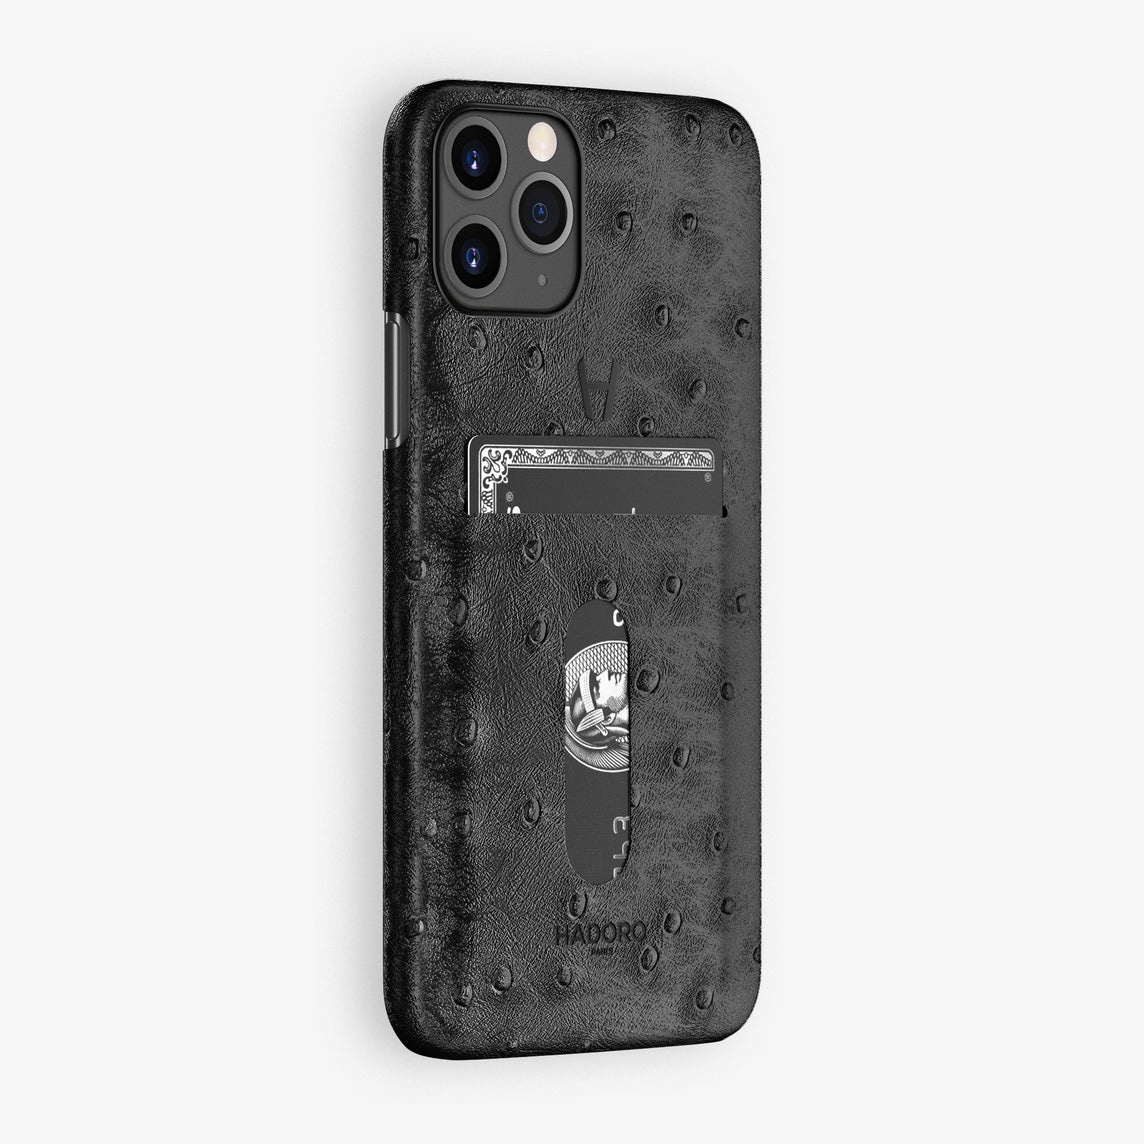 Ostrich Card Holder Case iPhone 11 Pro | Black - Black